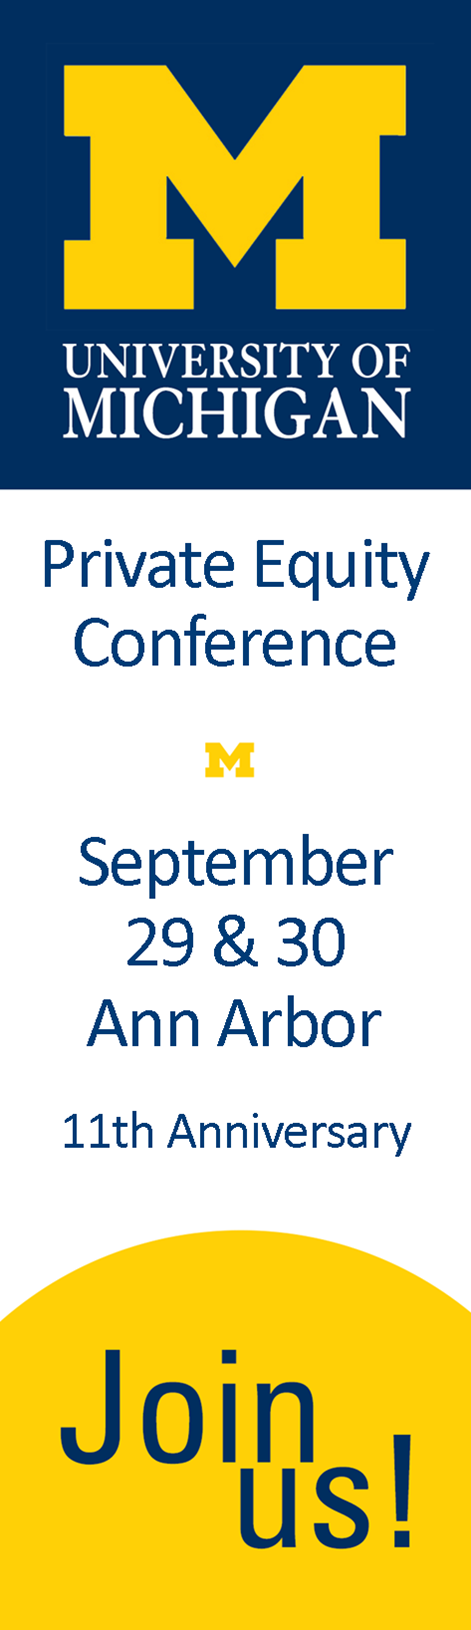 Private Equity Conference September 29 & 30 Ann Arbor